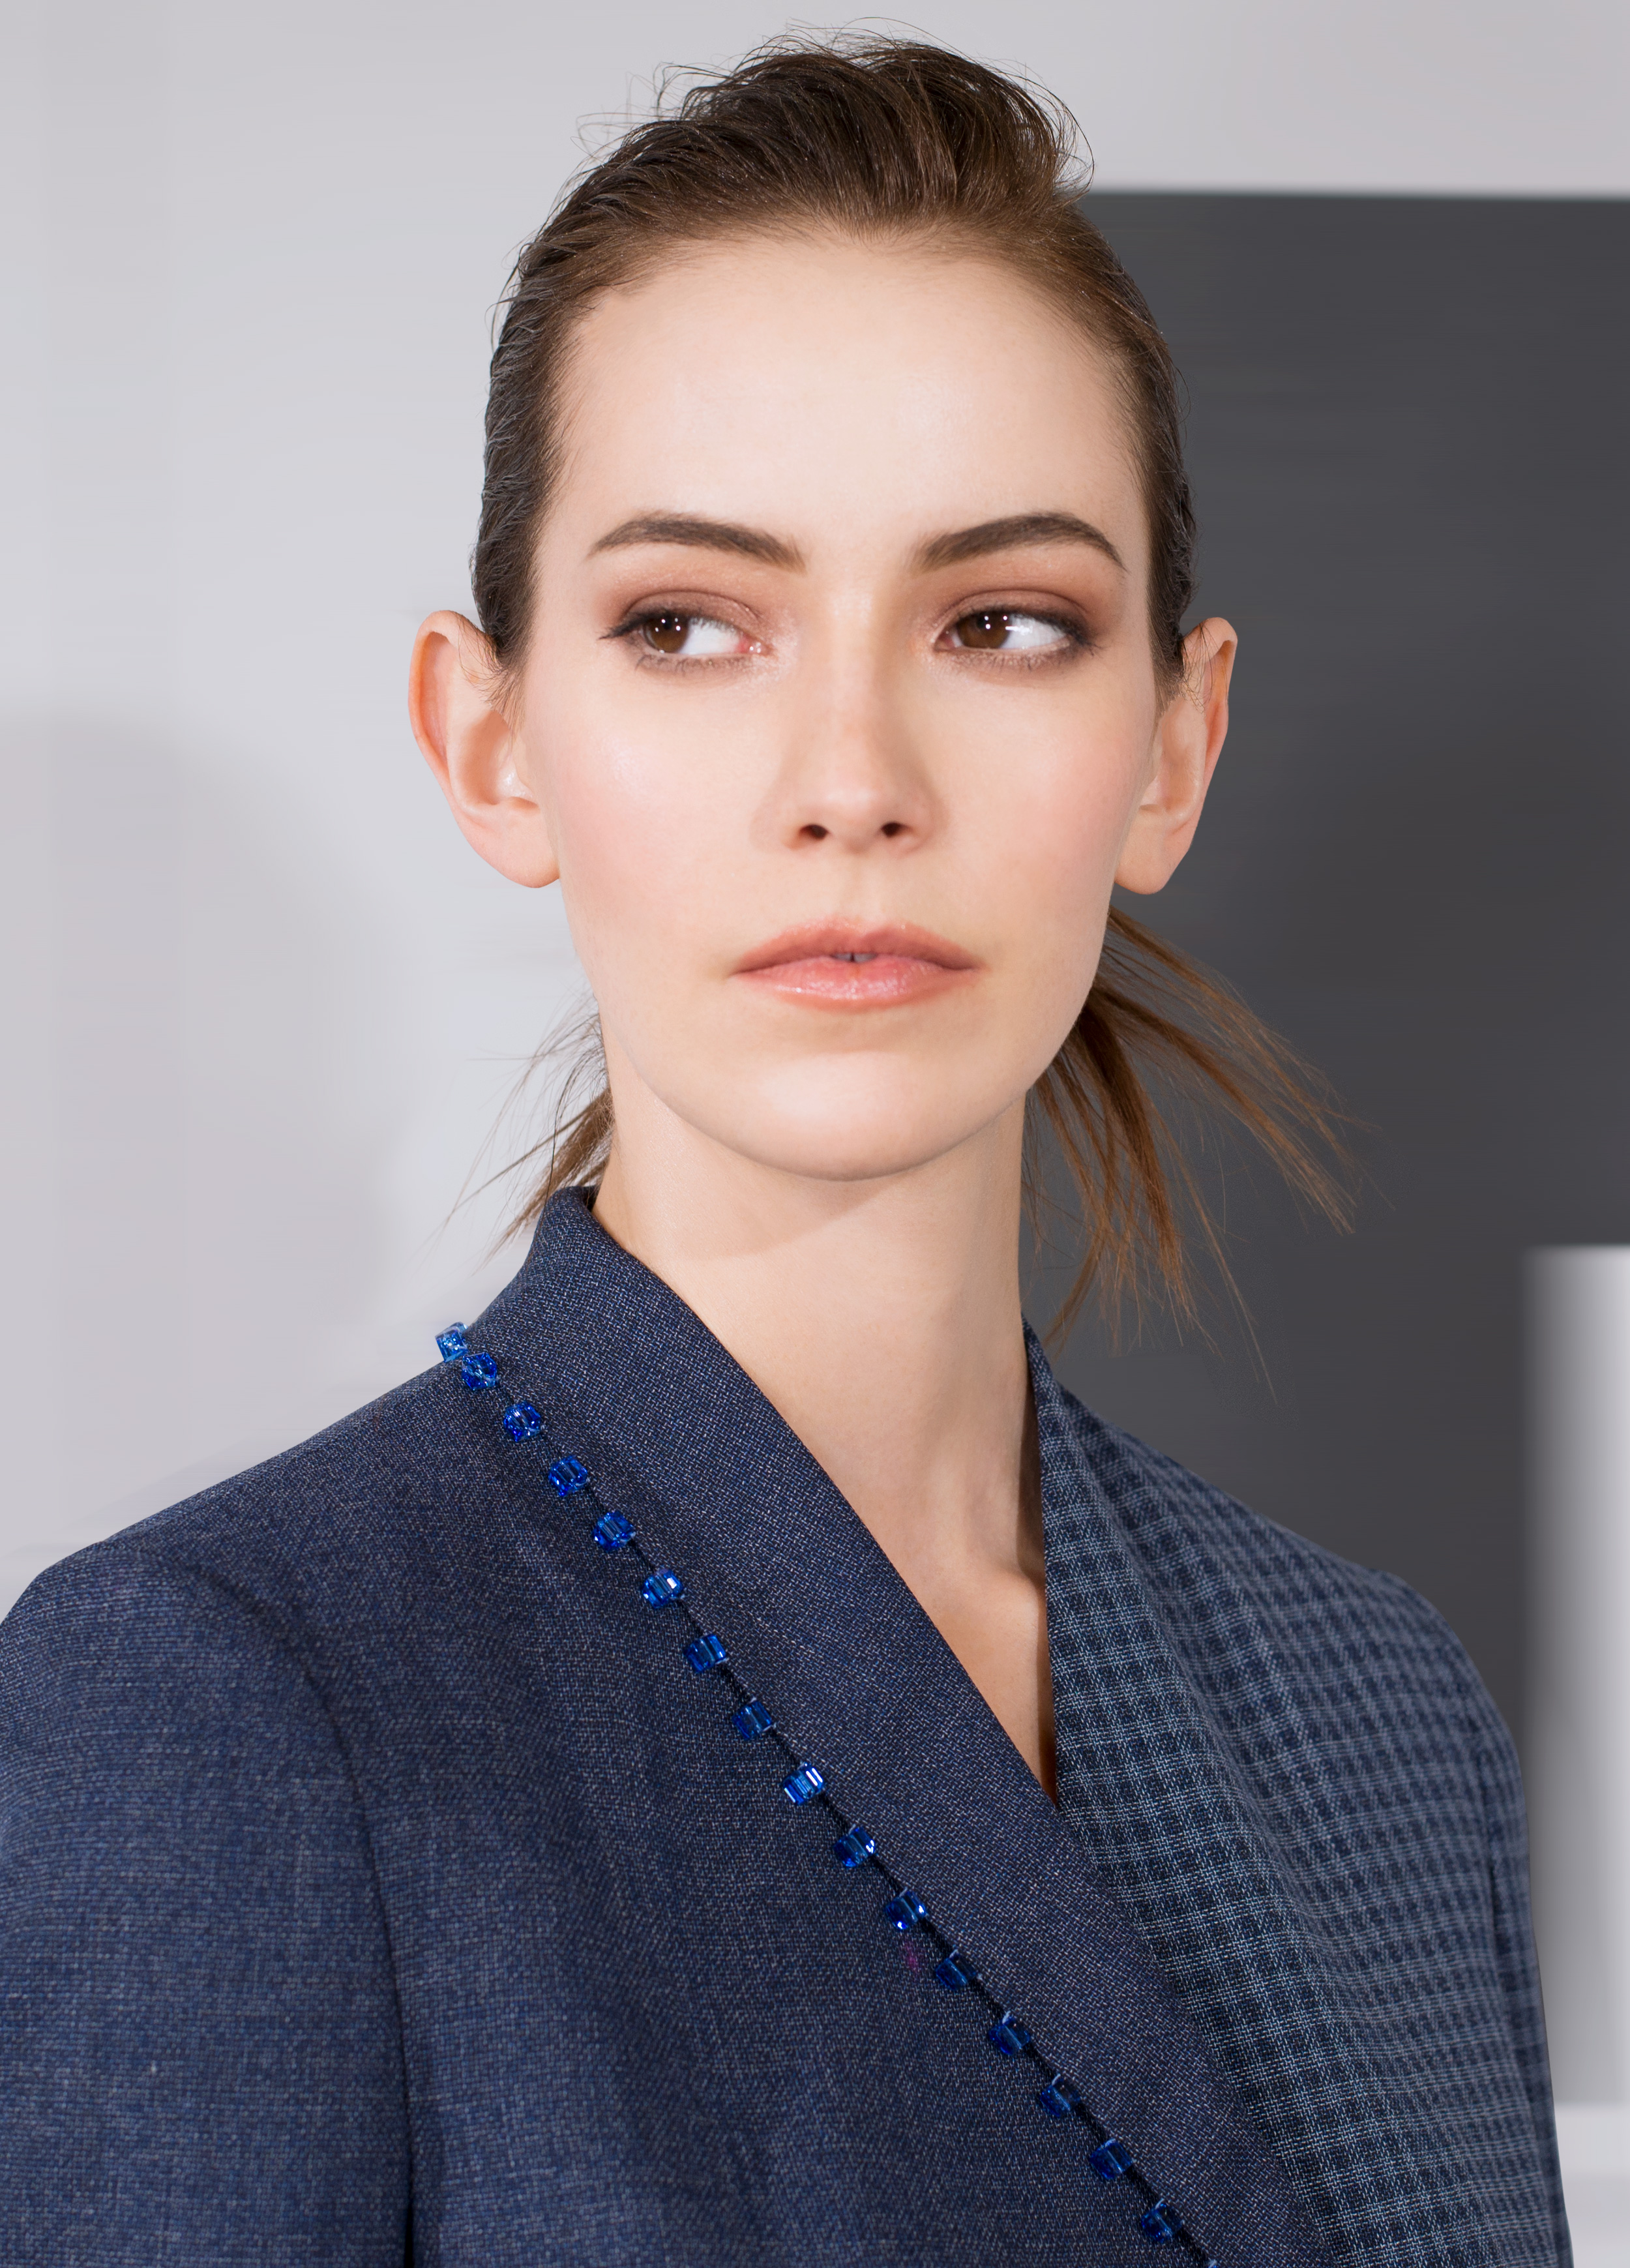 Voile fine wool with micro plaid beaded lapel jacket and micro plaid trouser  black oyster indigo blue